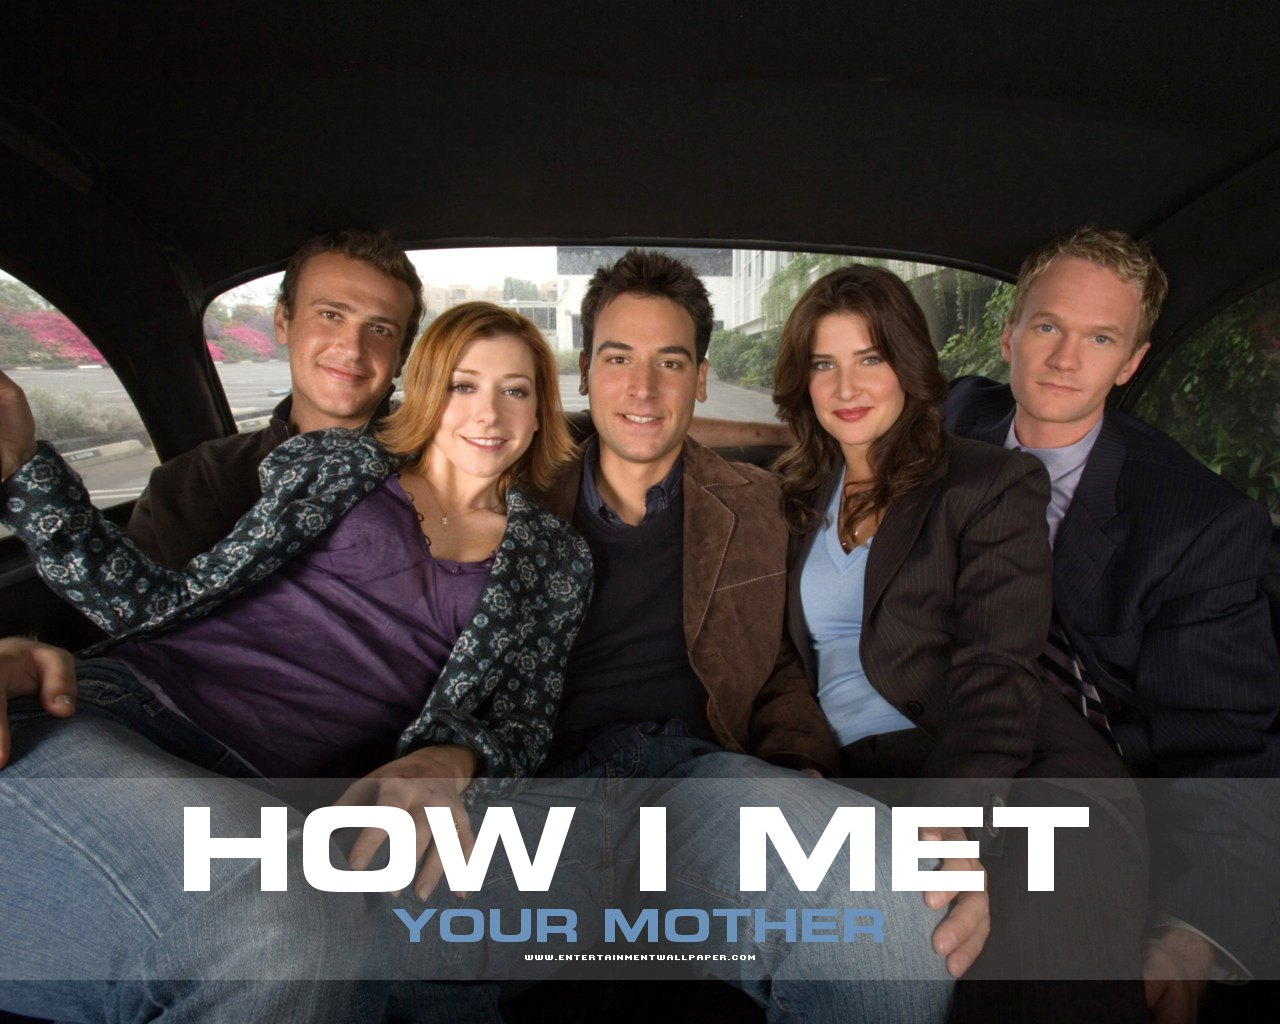 http://4.bp.blogspot.com/--oBDkhbmD8A/Tni2bFFzeMI/AAAAAAAAEZQ/gXRgE7-88Kg/s1600/tv_how_i_met_your_mother02.jpg